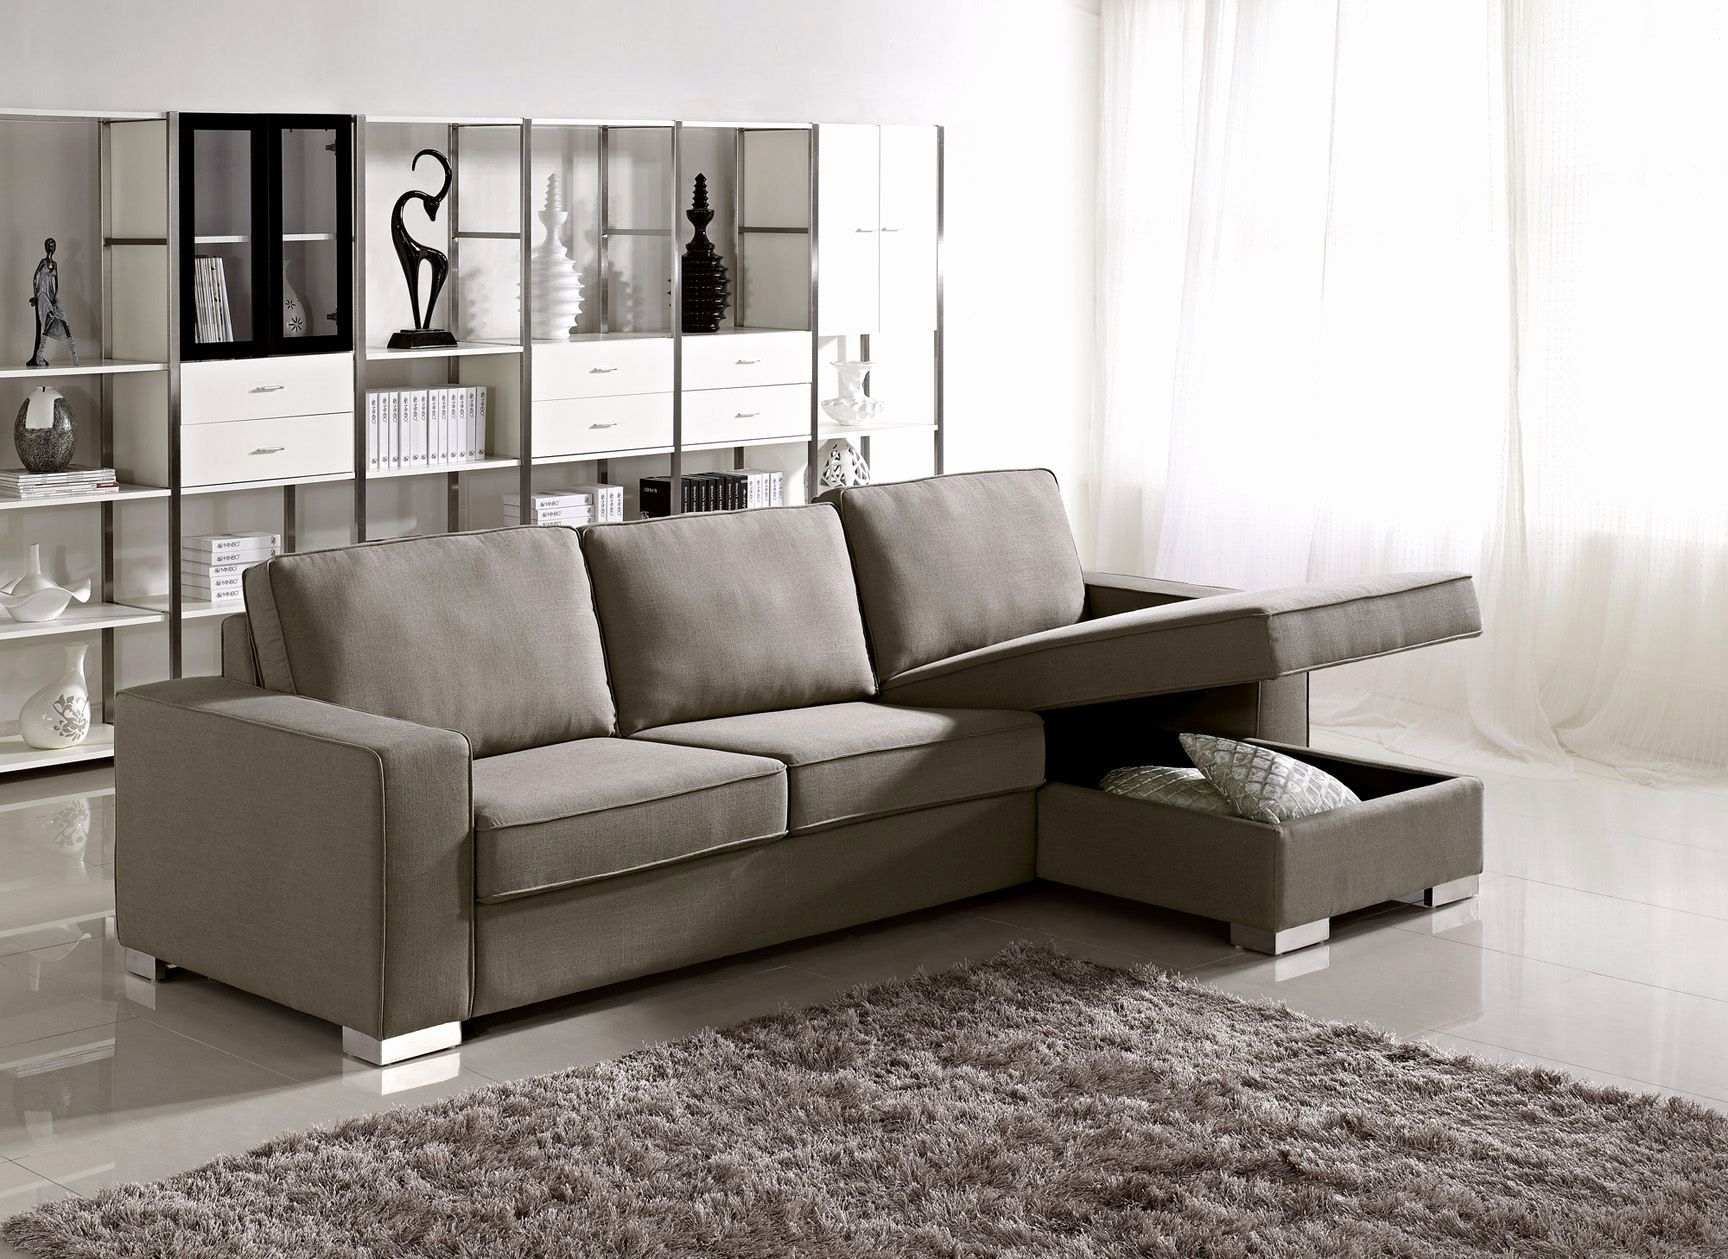 Luxury Apartment Size Sectional Sofa With Chaise Picture Apartment